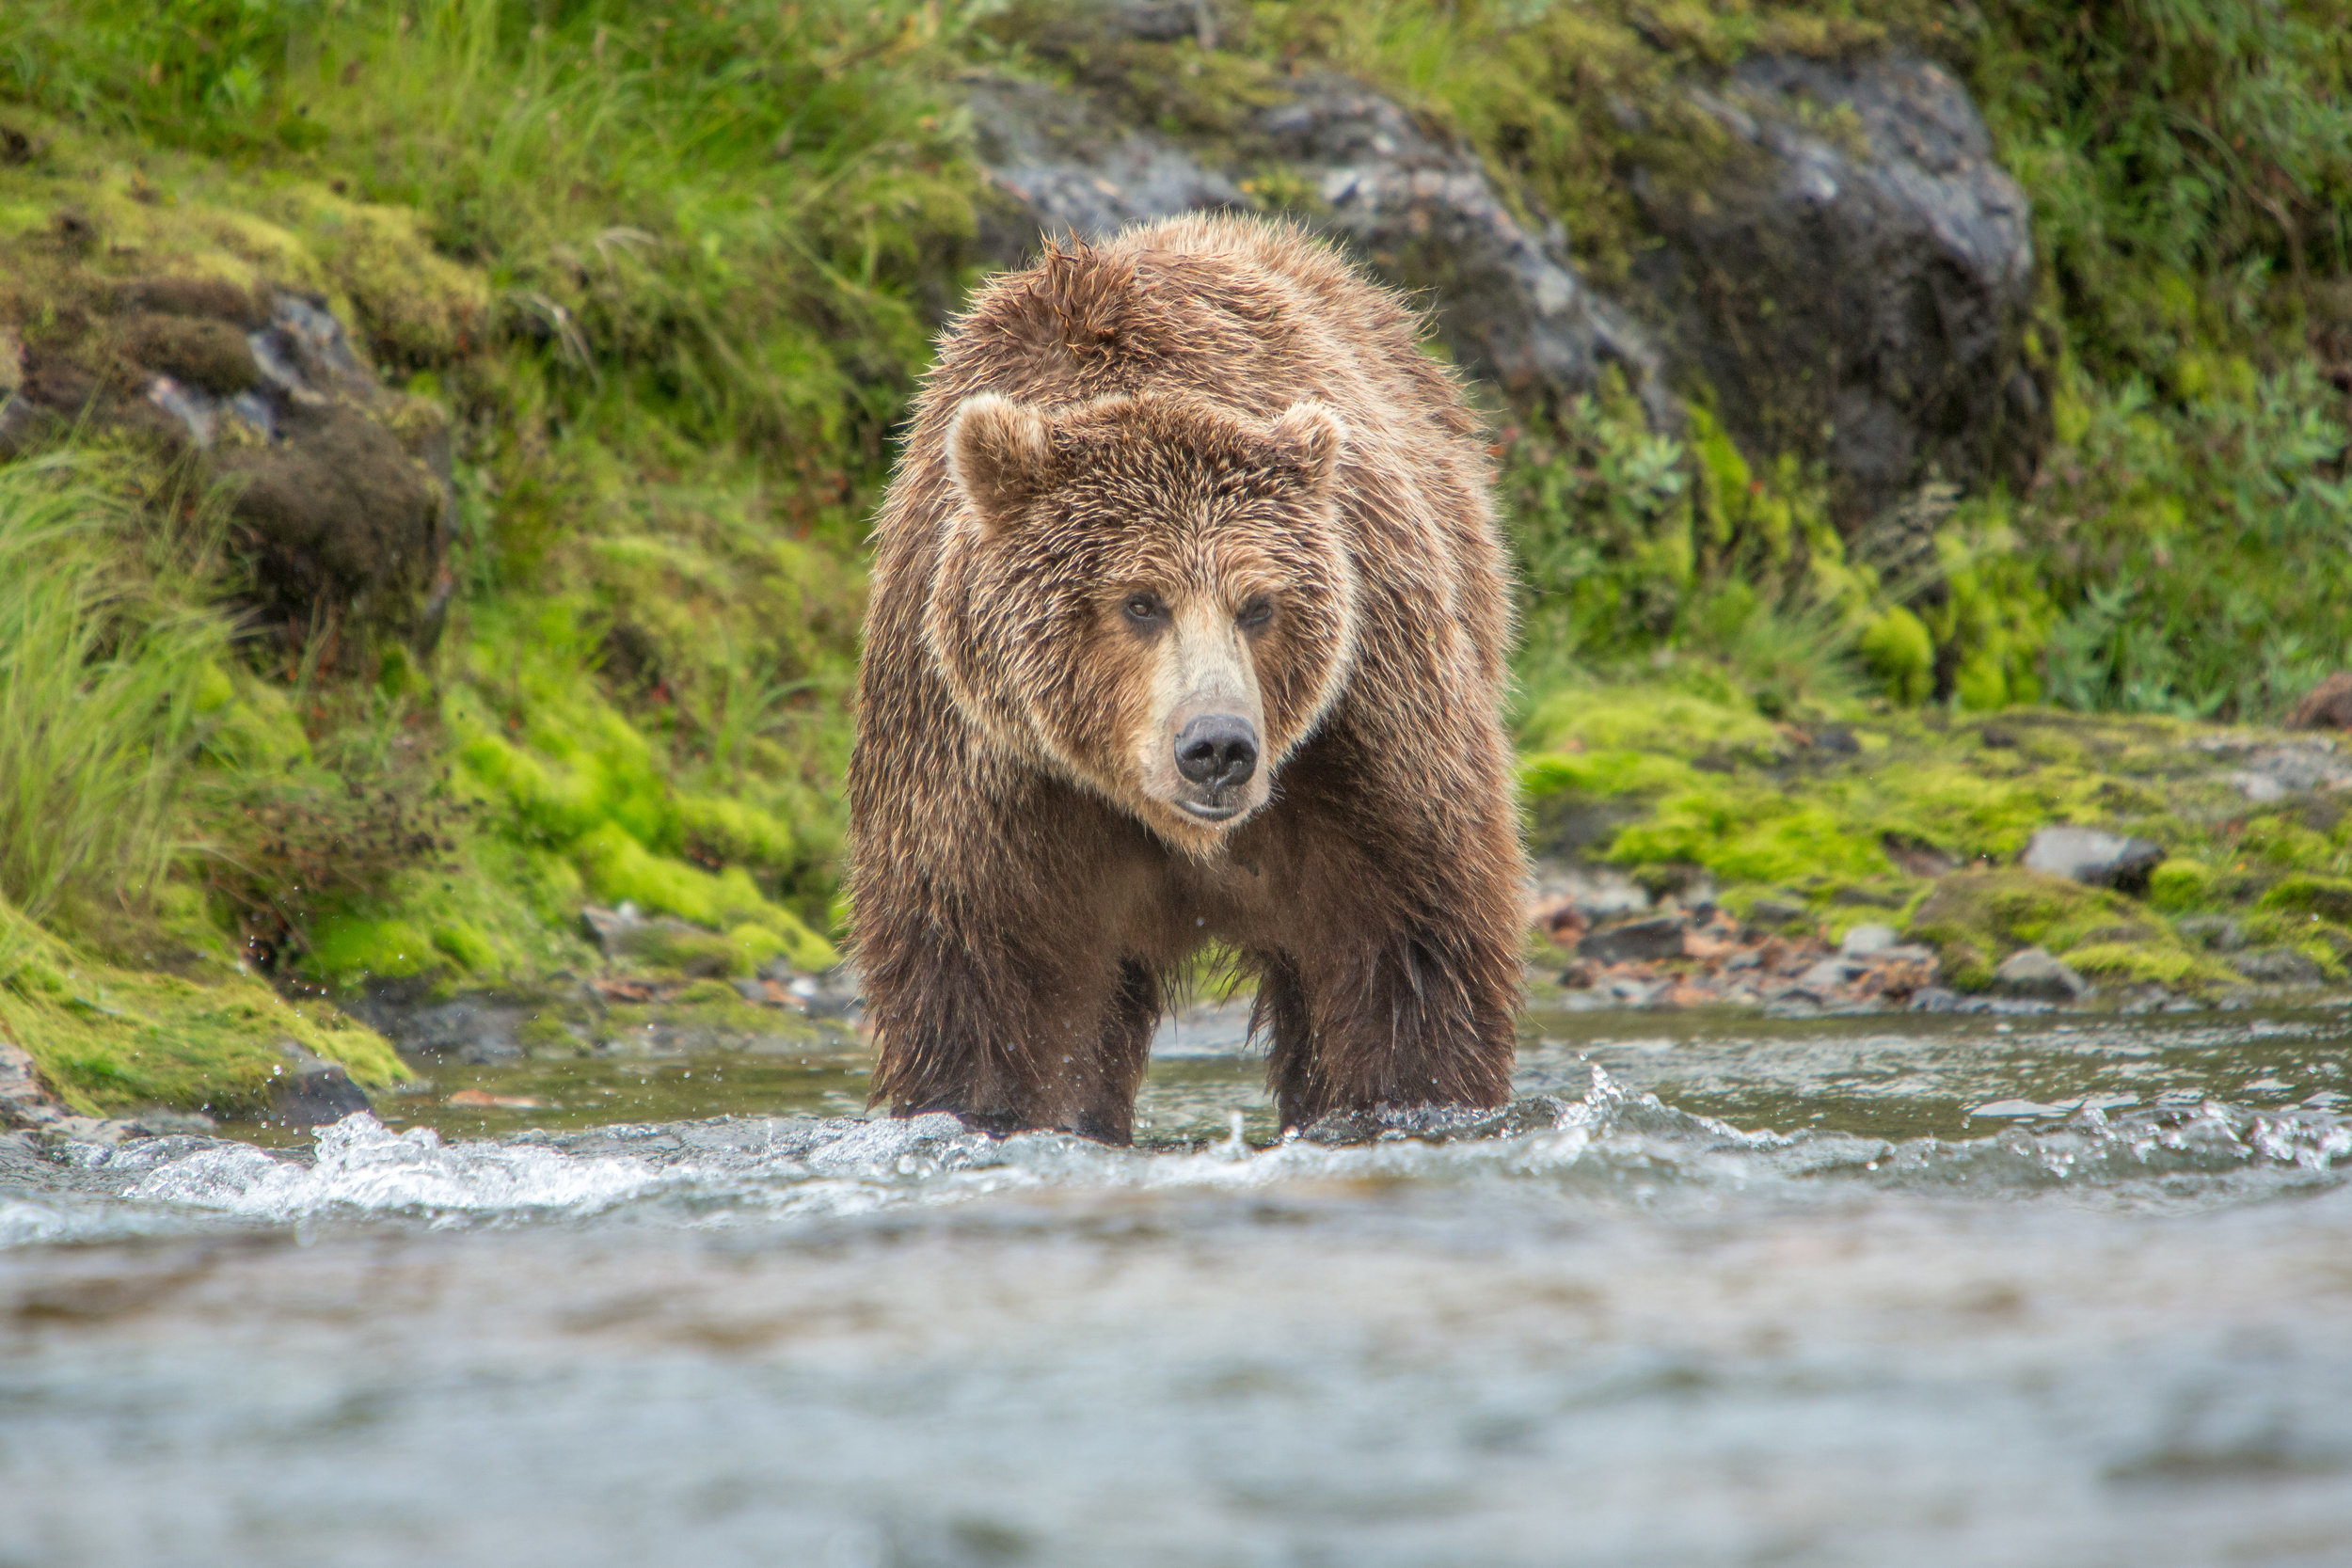 A large sow waiting for the perfect opportunity to catch a salmon. Her 3 cubs played on the riverbank as she fished.